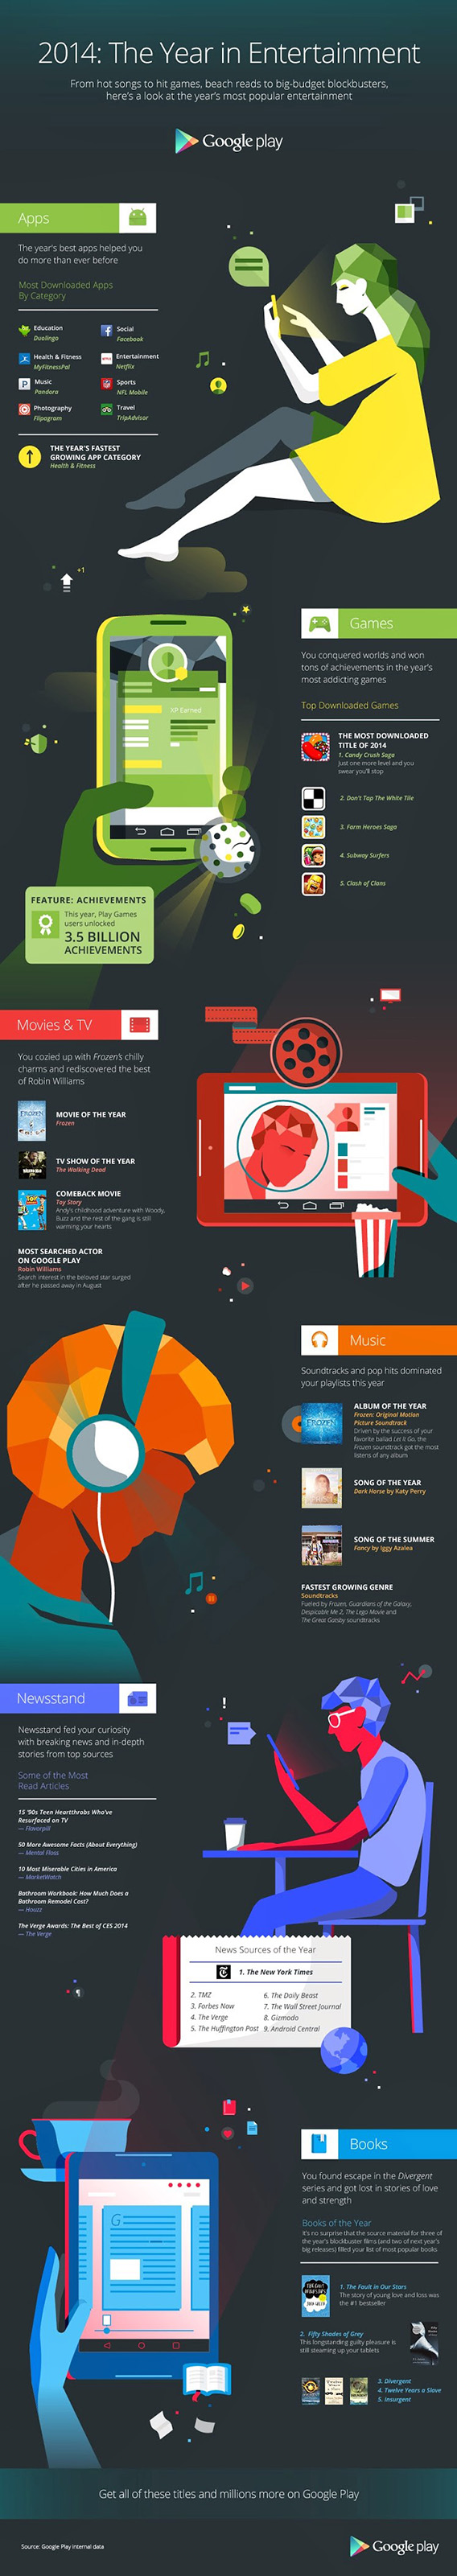 Google 2014 apps of the year infographic